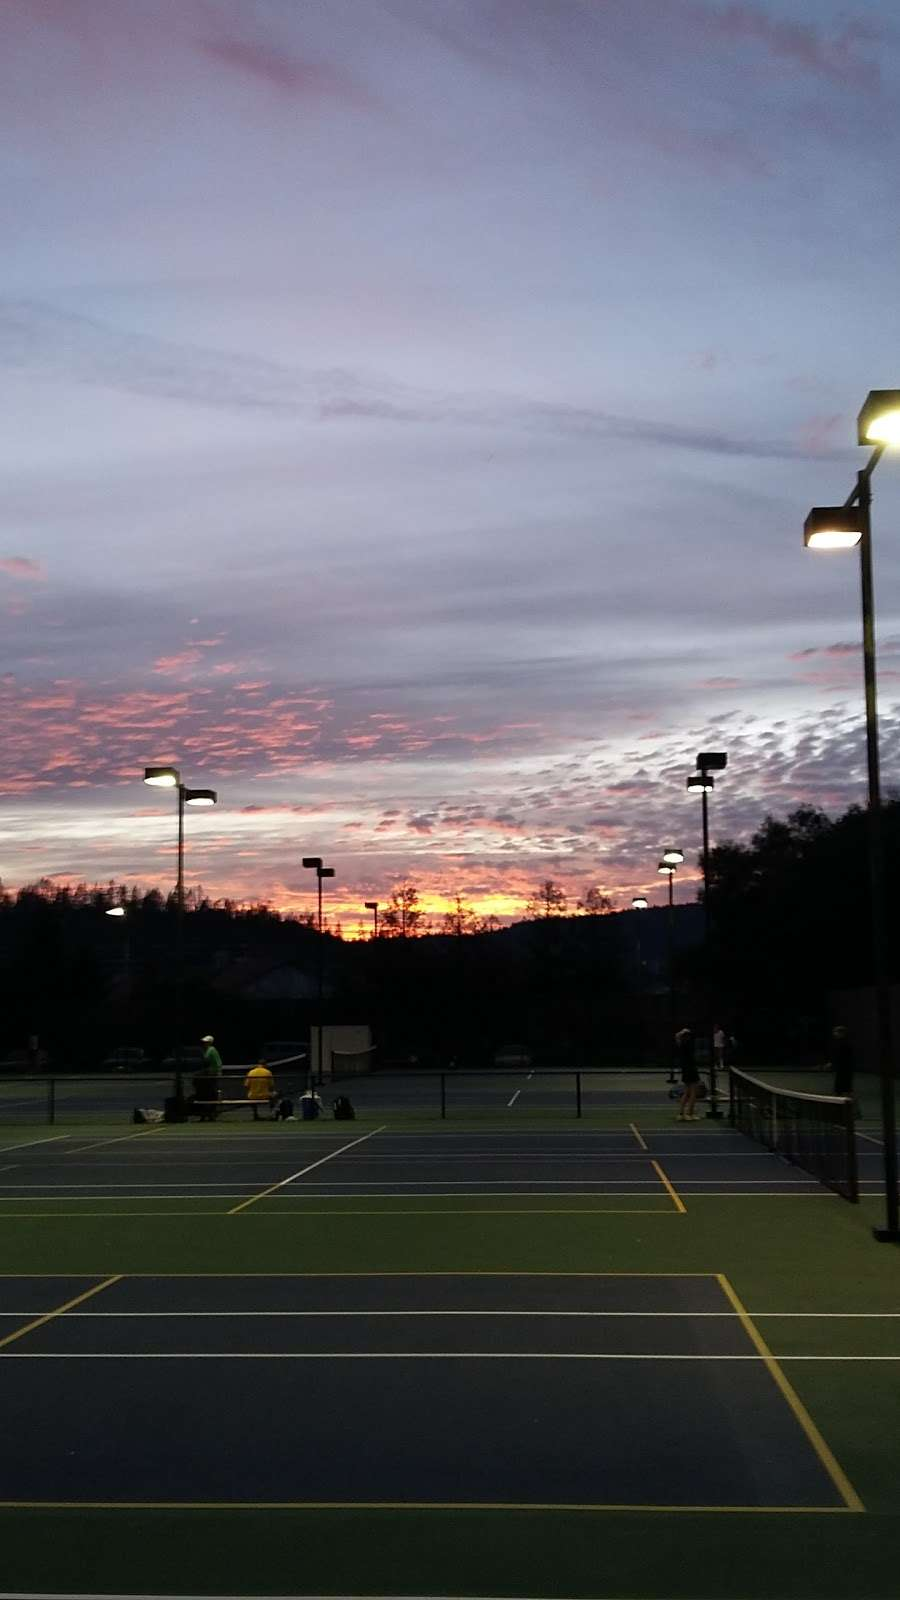 Sky Park Tennis - gym  | Photo 4 of 5 | Address: 912 Coast Range Dr, Scotts Valley, CA 95066, USA